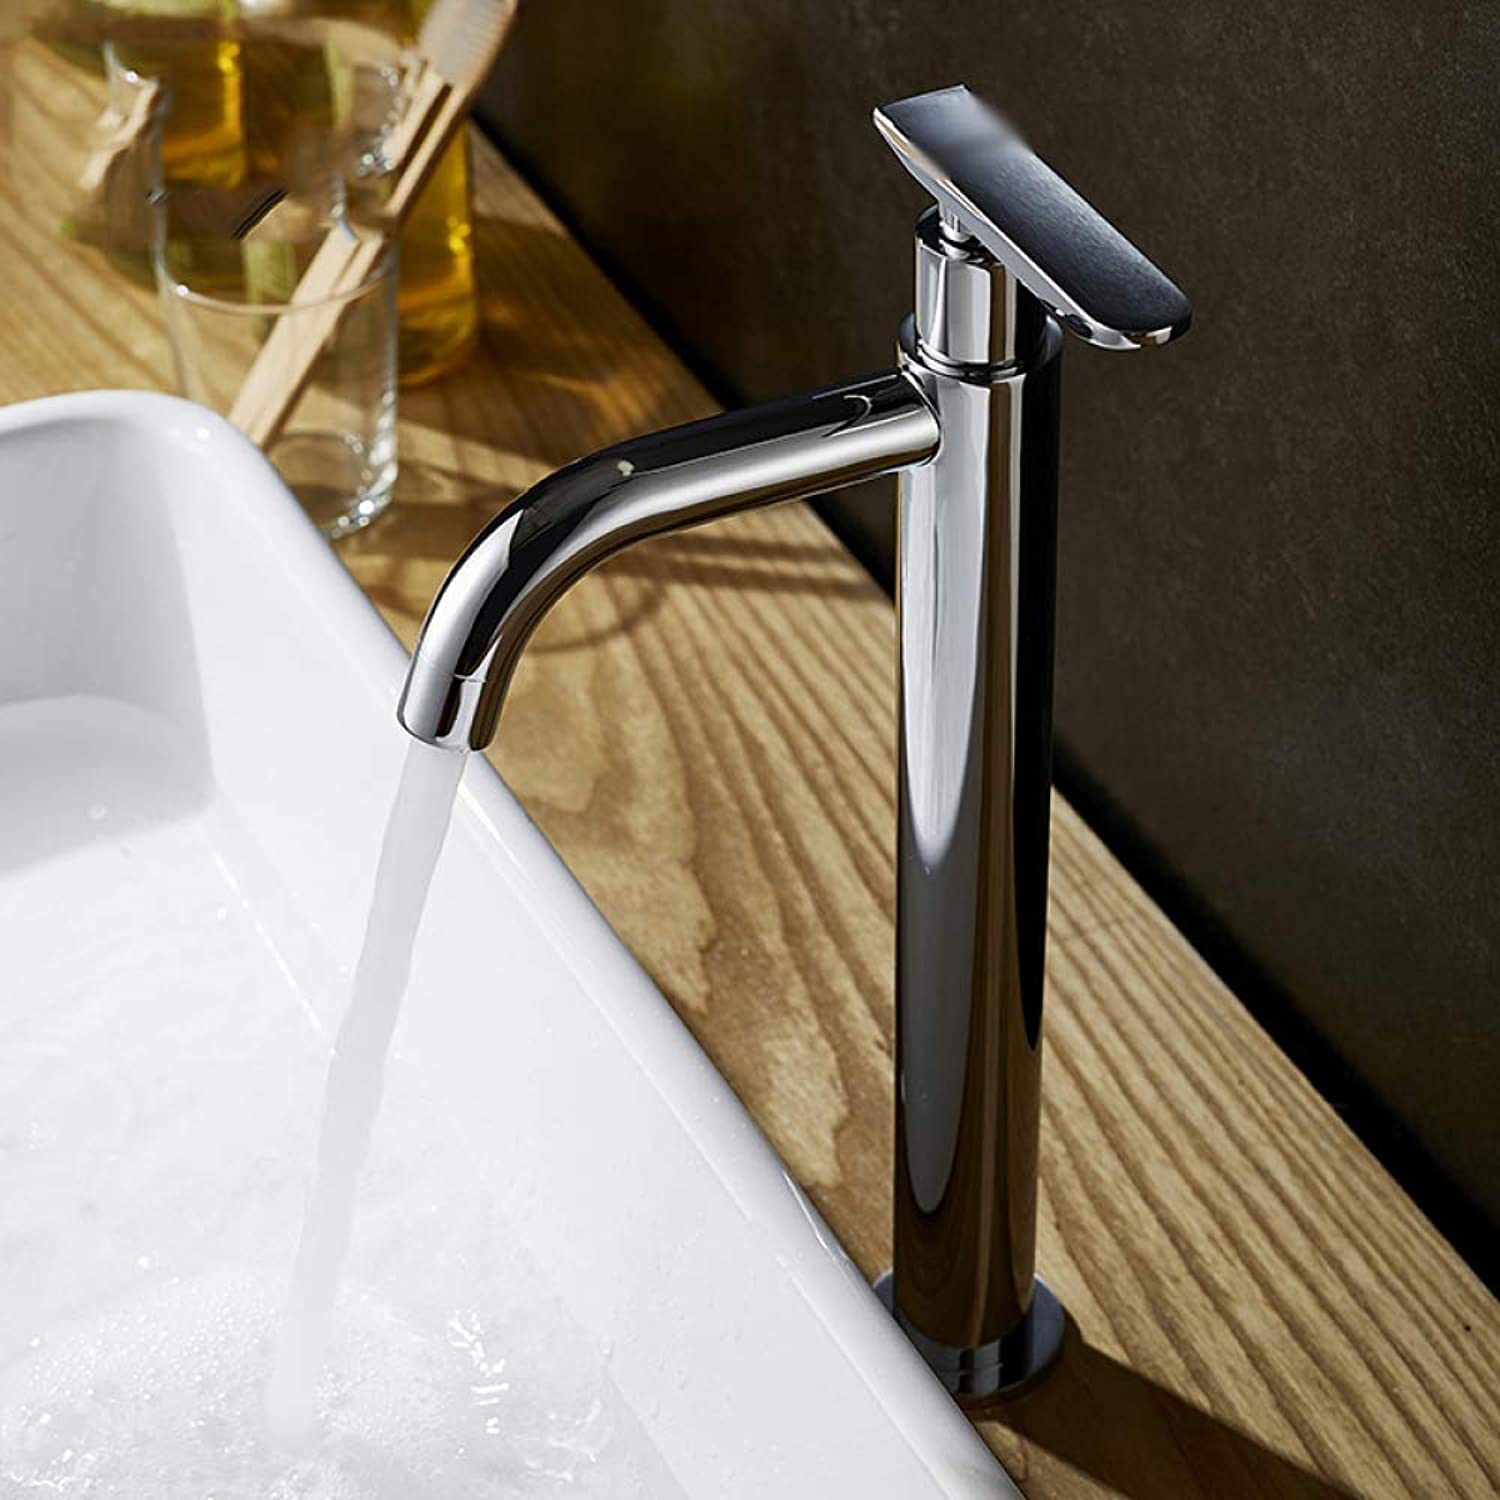 WFL Copper Heightening Single Cold Basin Faucet Washing Face Faucet,1,1